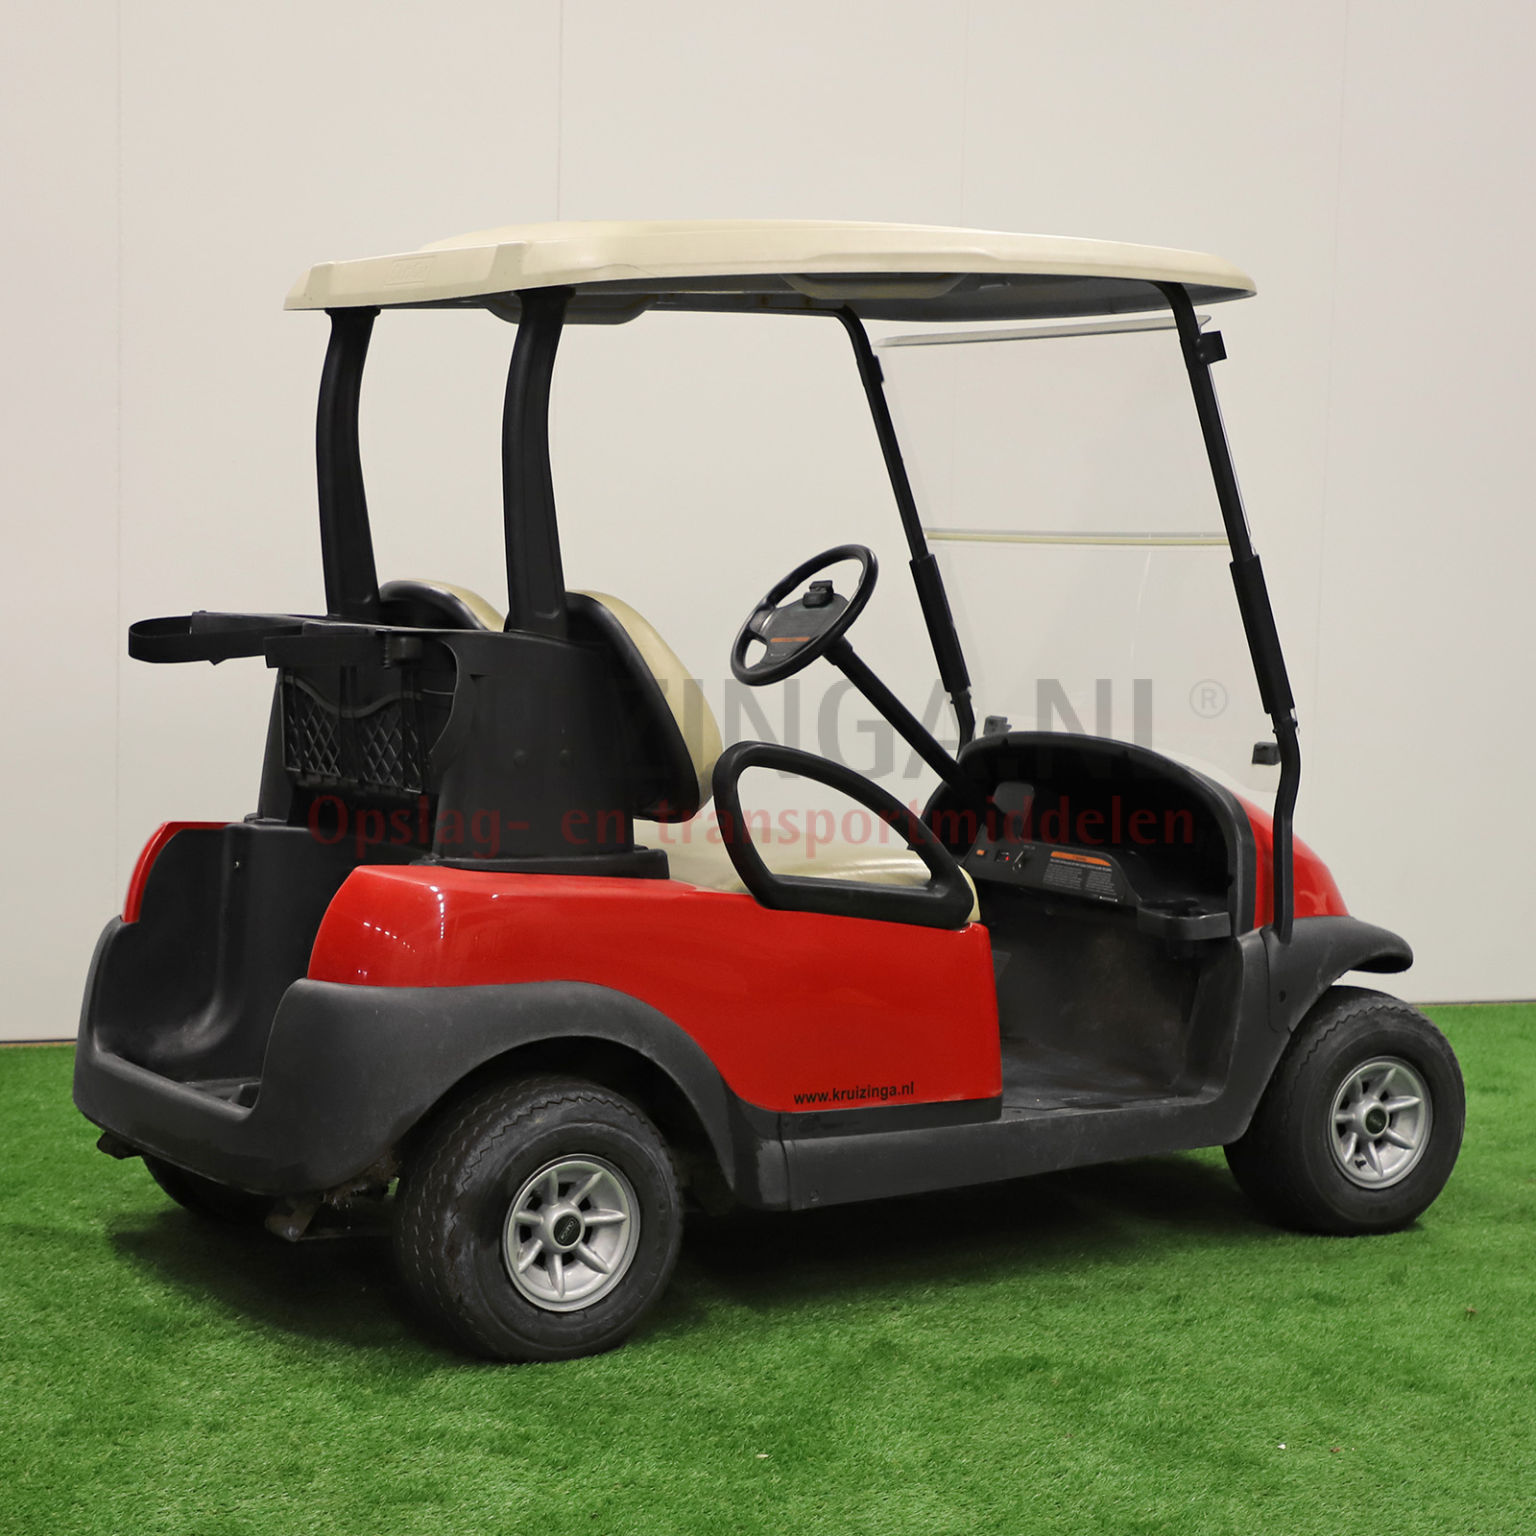 golf cart club car precedent i2 pour 2 personnes lectrique occasion. Black Bedroom Furniture Sets. Home Design Ideas